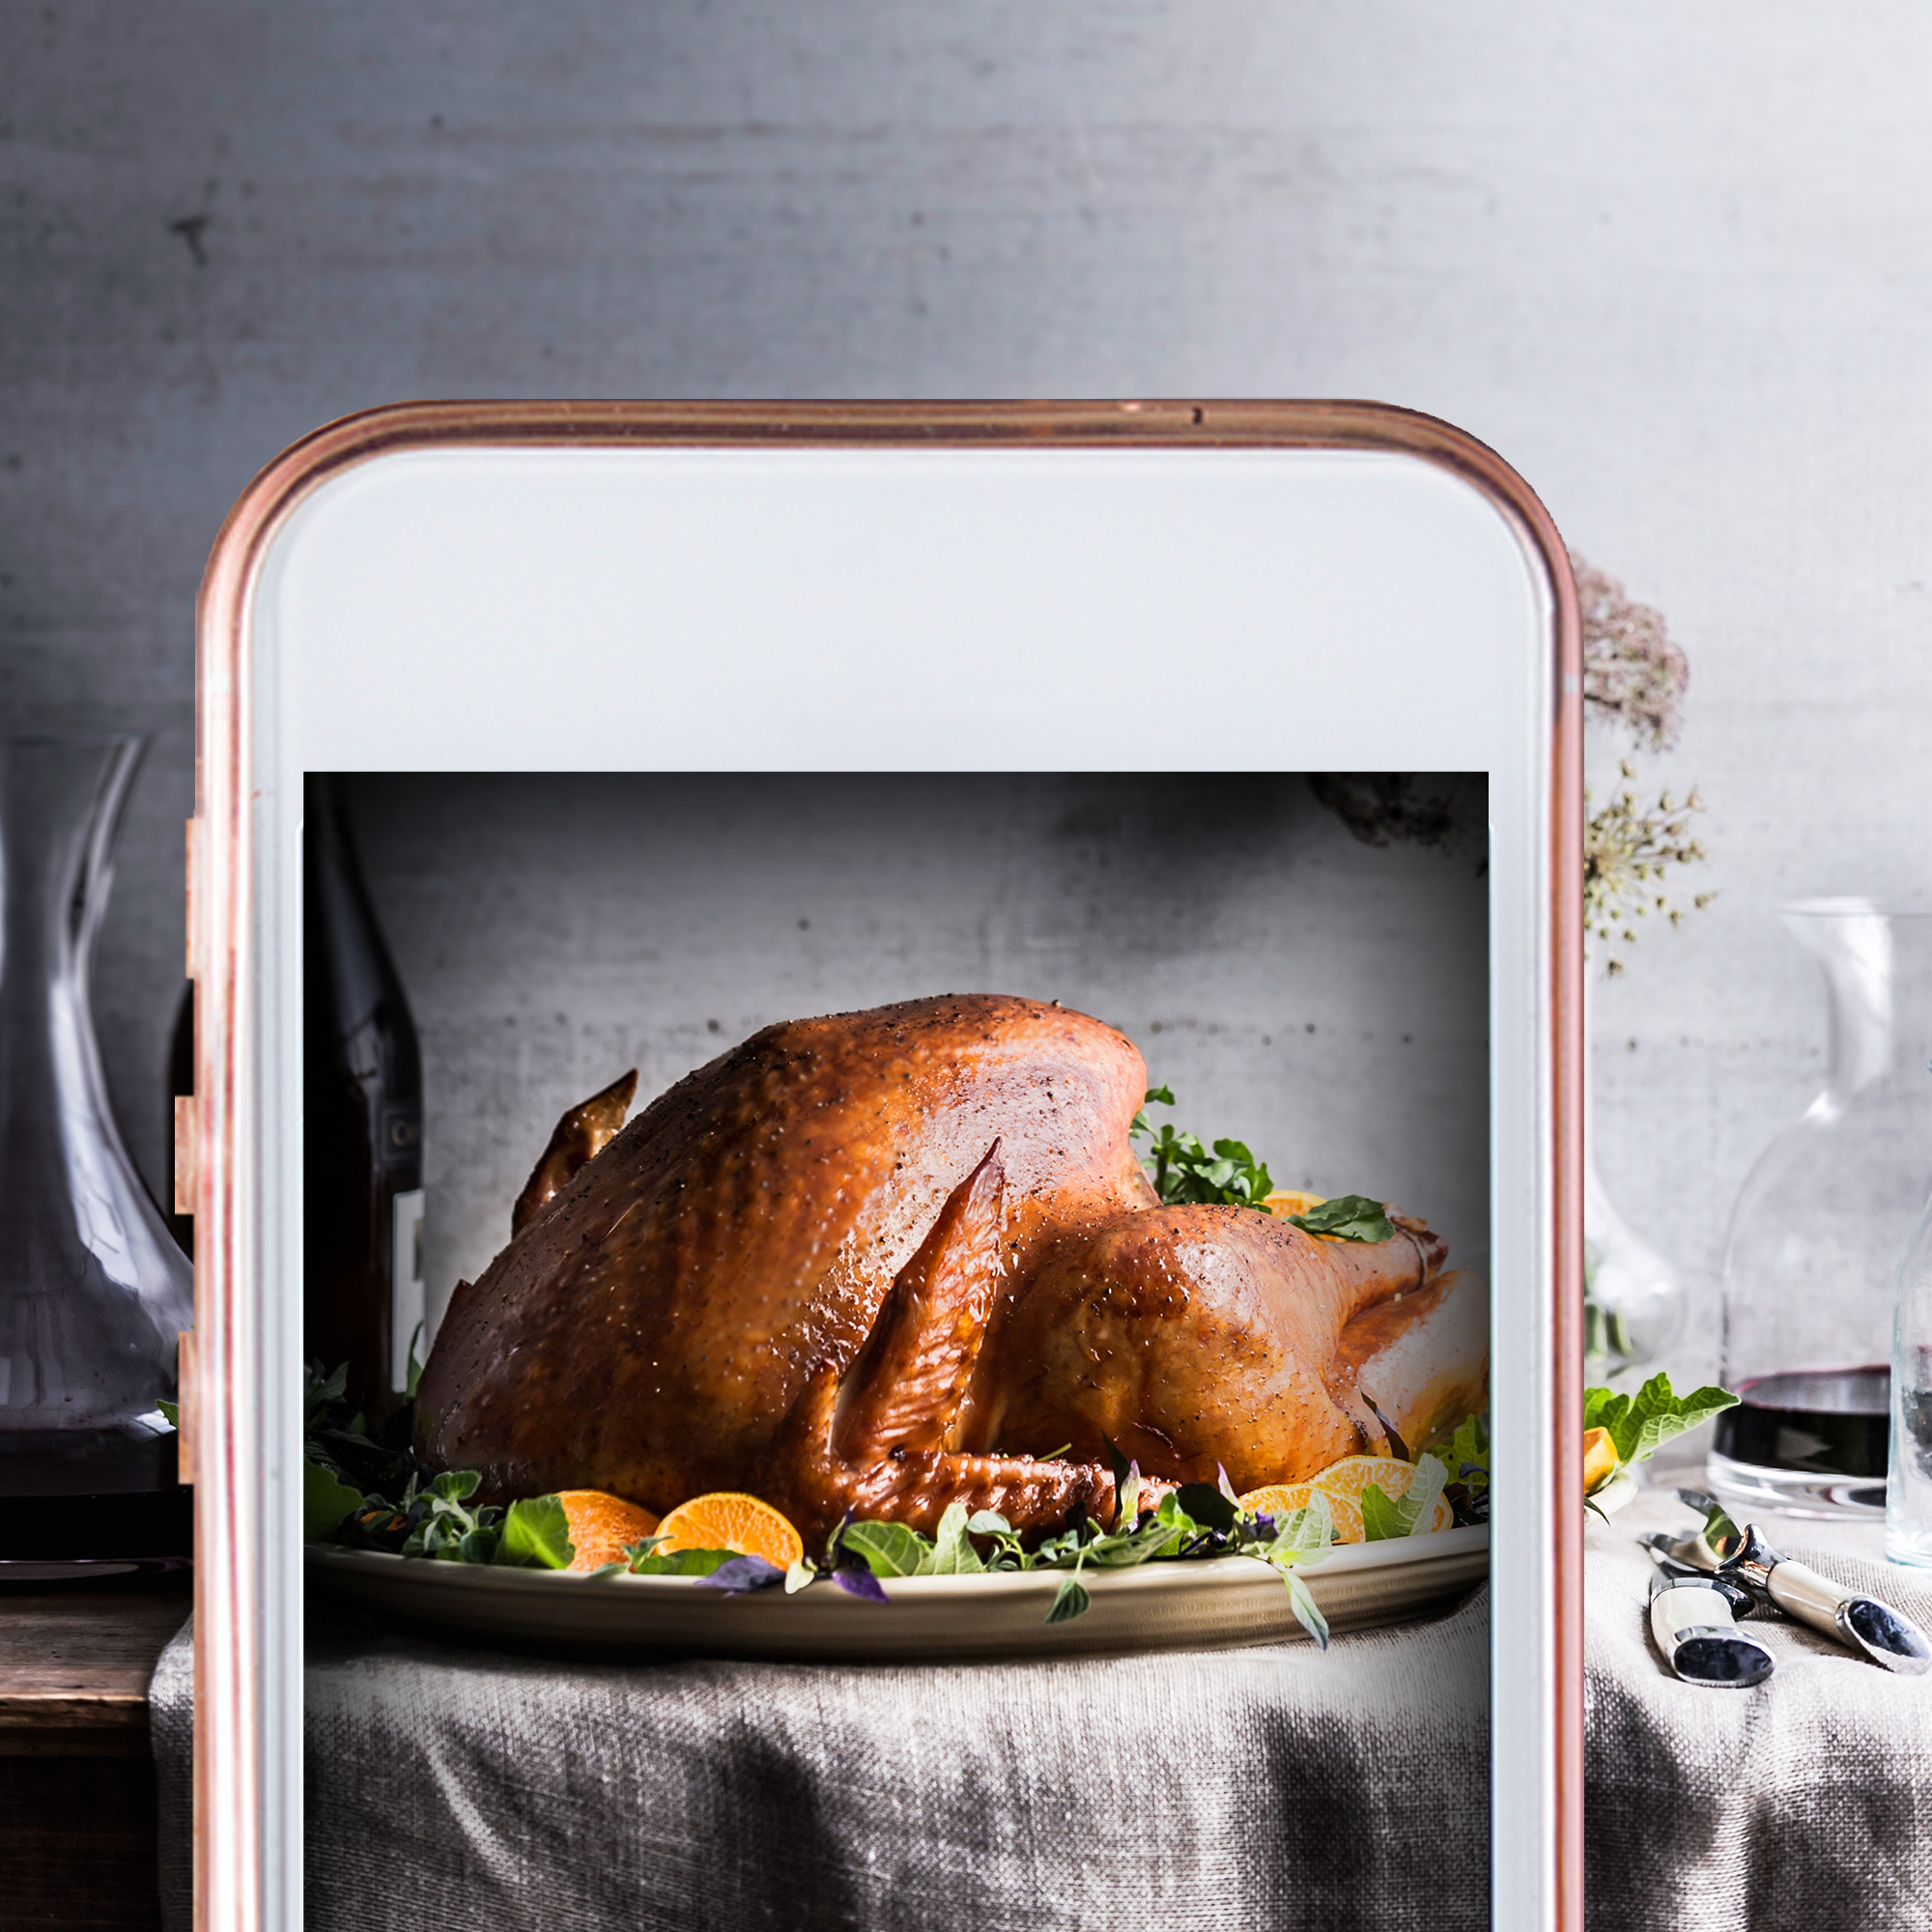 How to Make the Most Insta-Worthy Turkey, According to Chef Marcus Samuelsson